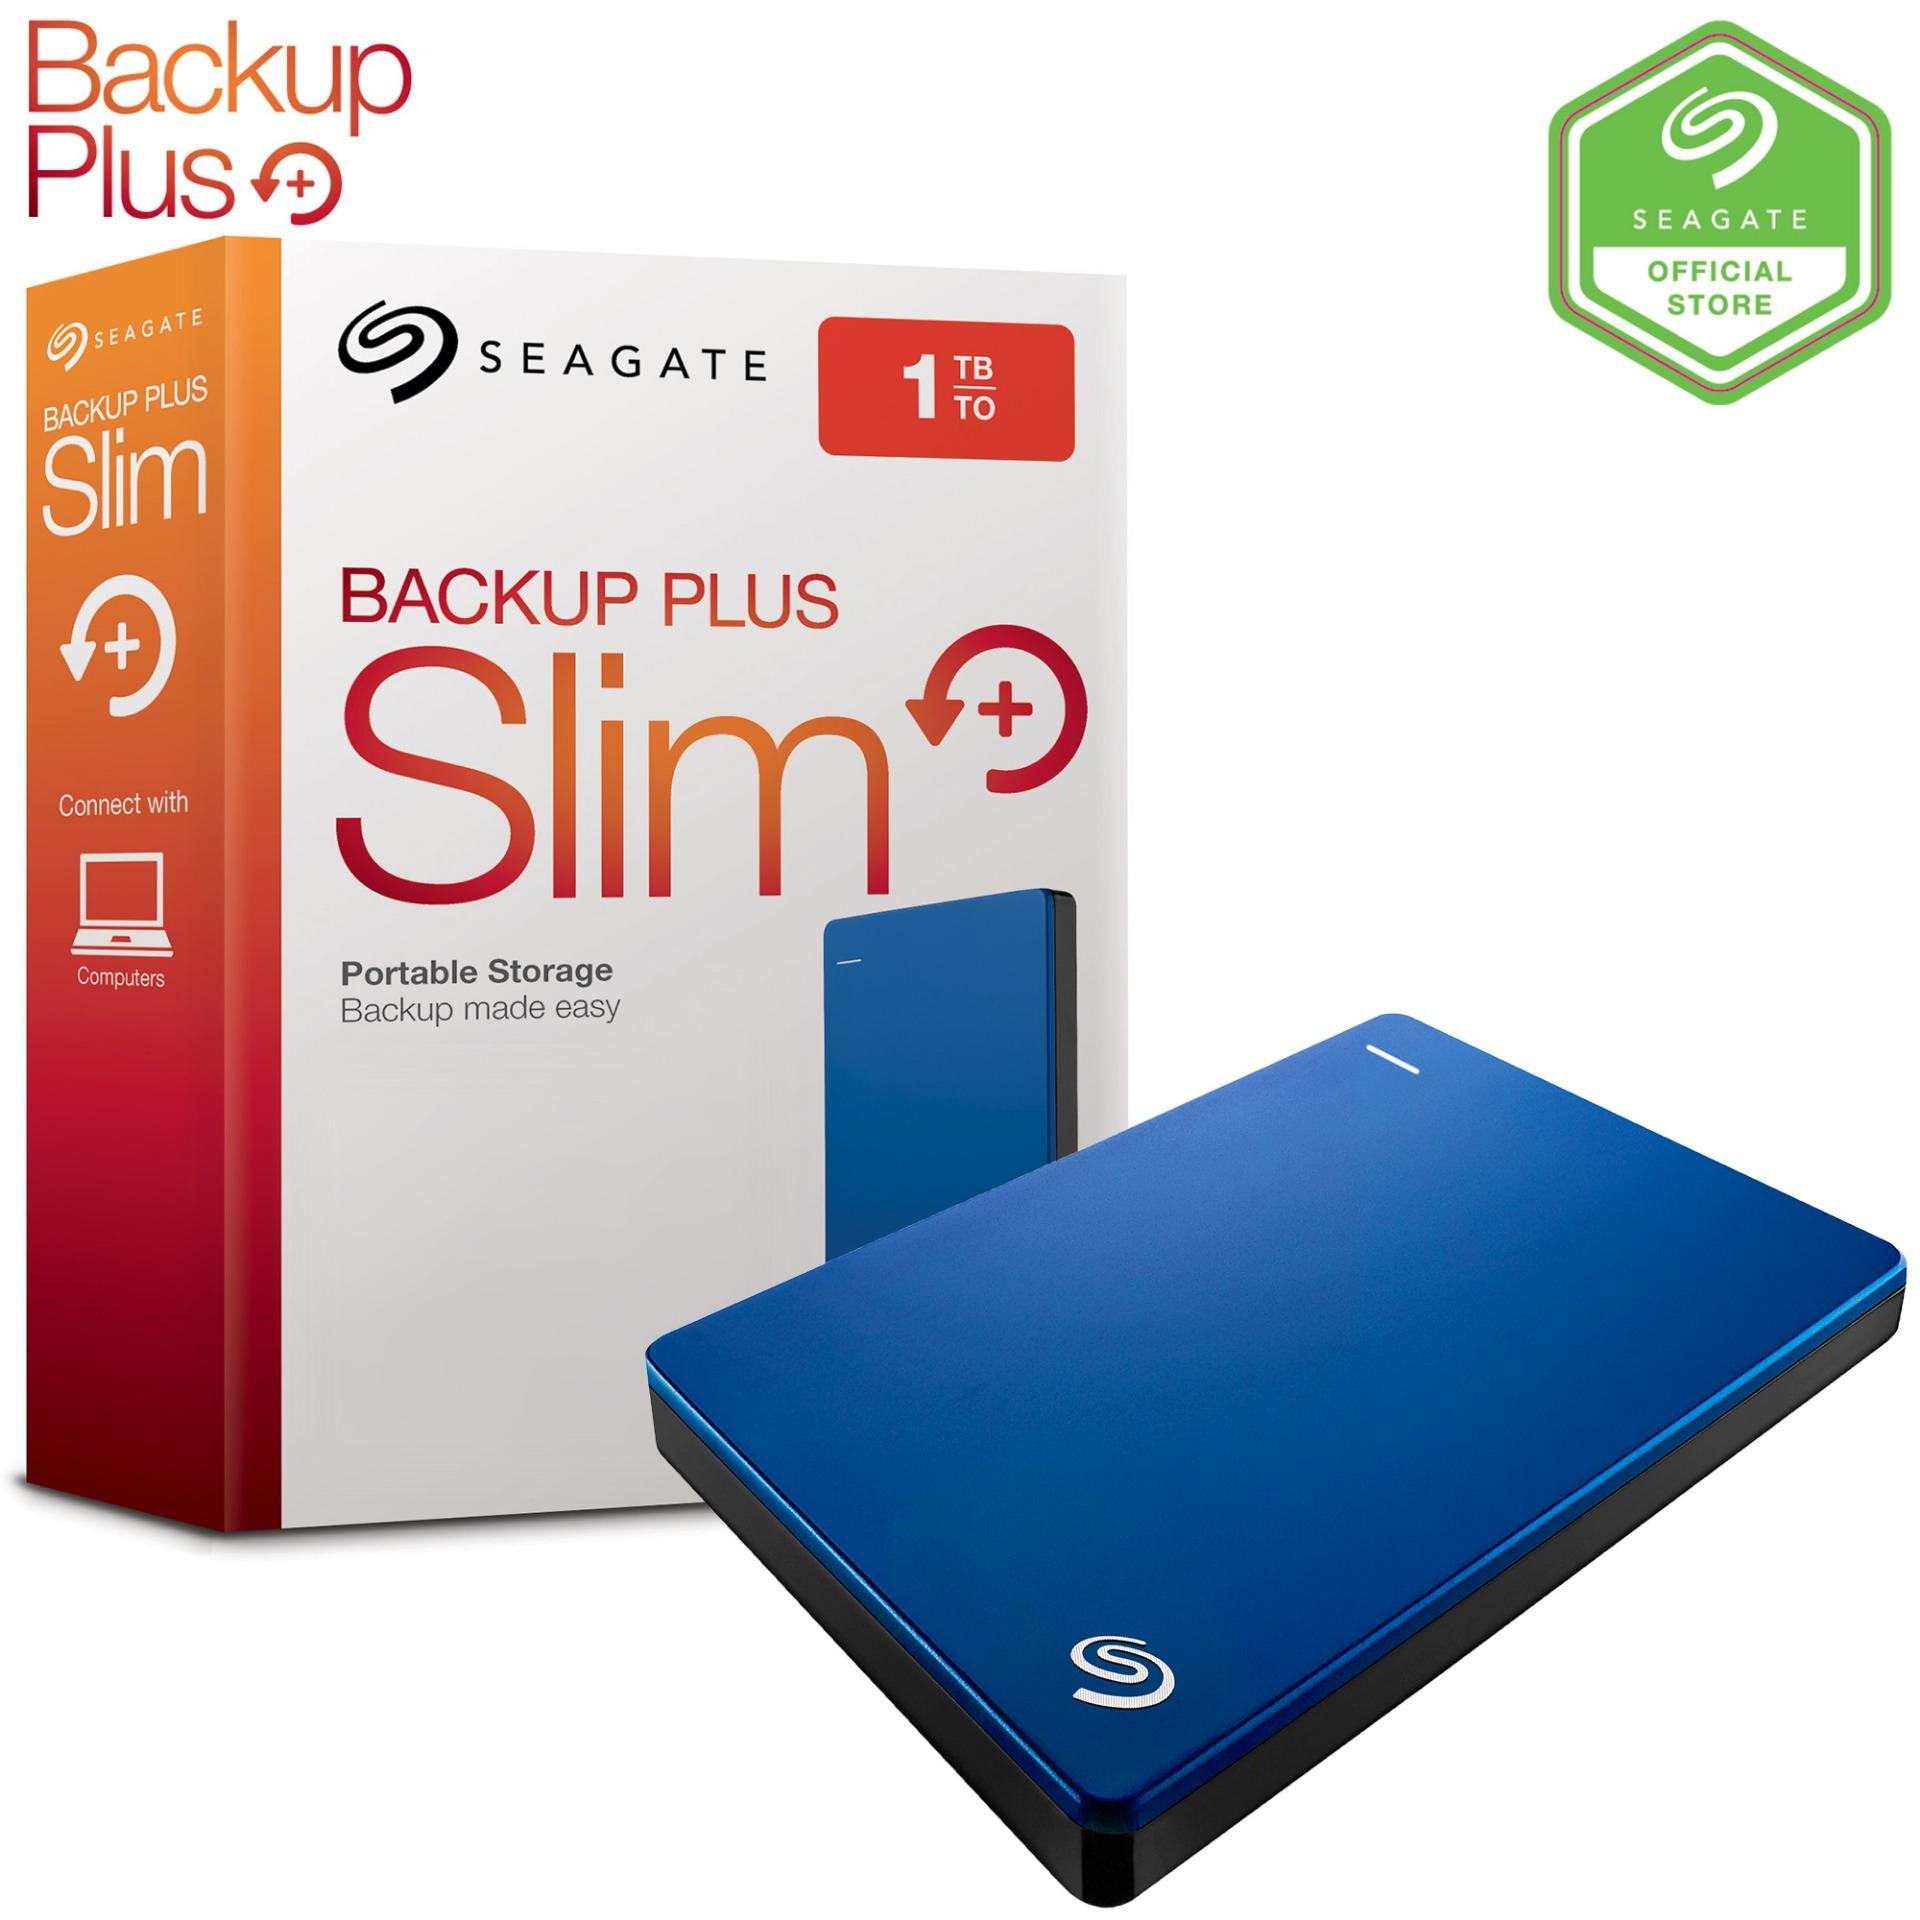 Seagate Backup Plus Slim 500GB SuperSpeed USB 3.0 HDD Portable Hard Drive Silver